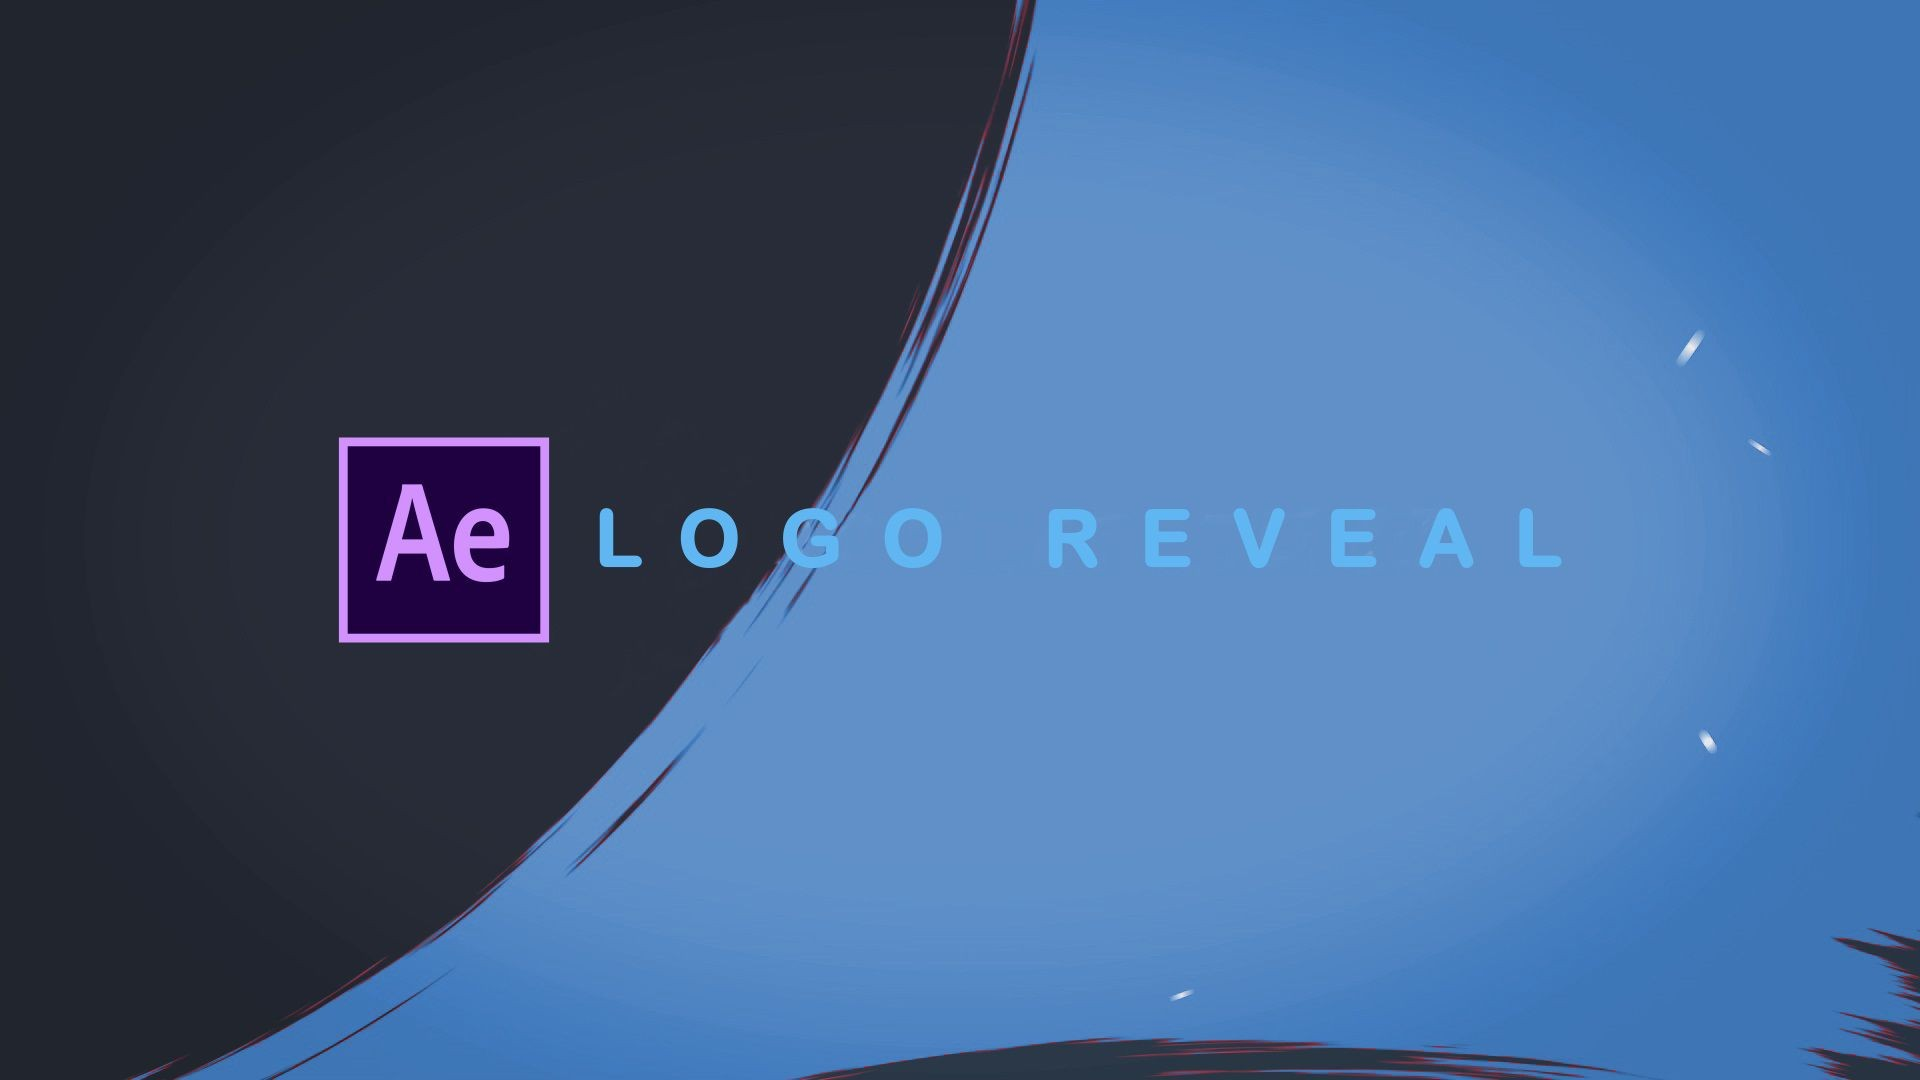 008 Unique Free Adobe After Effect Logo Intro Template High Resolution  Templates1920